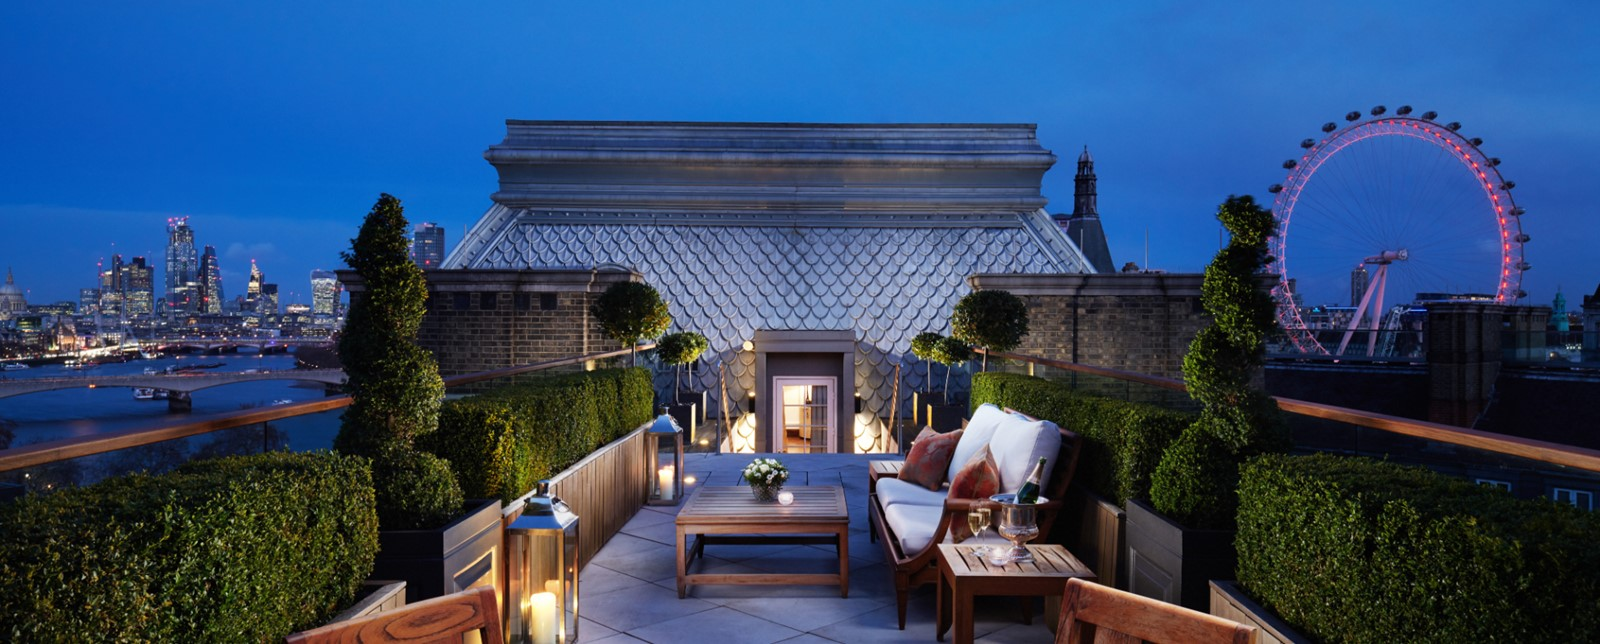 corinthia london musicians penthouse terrace